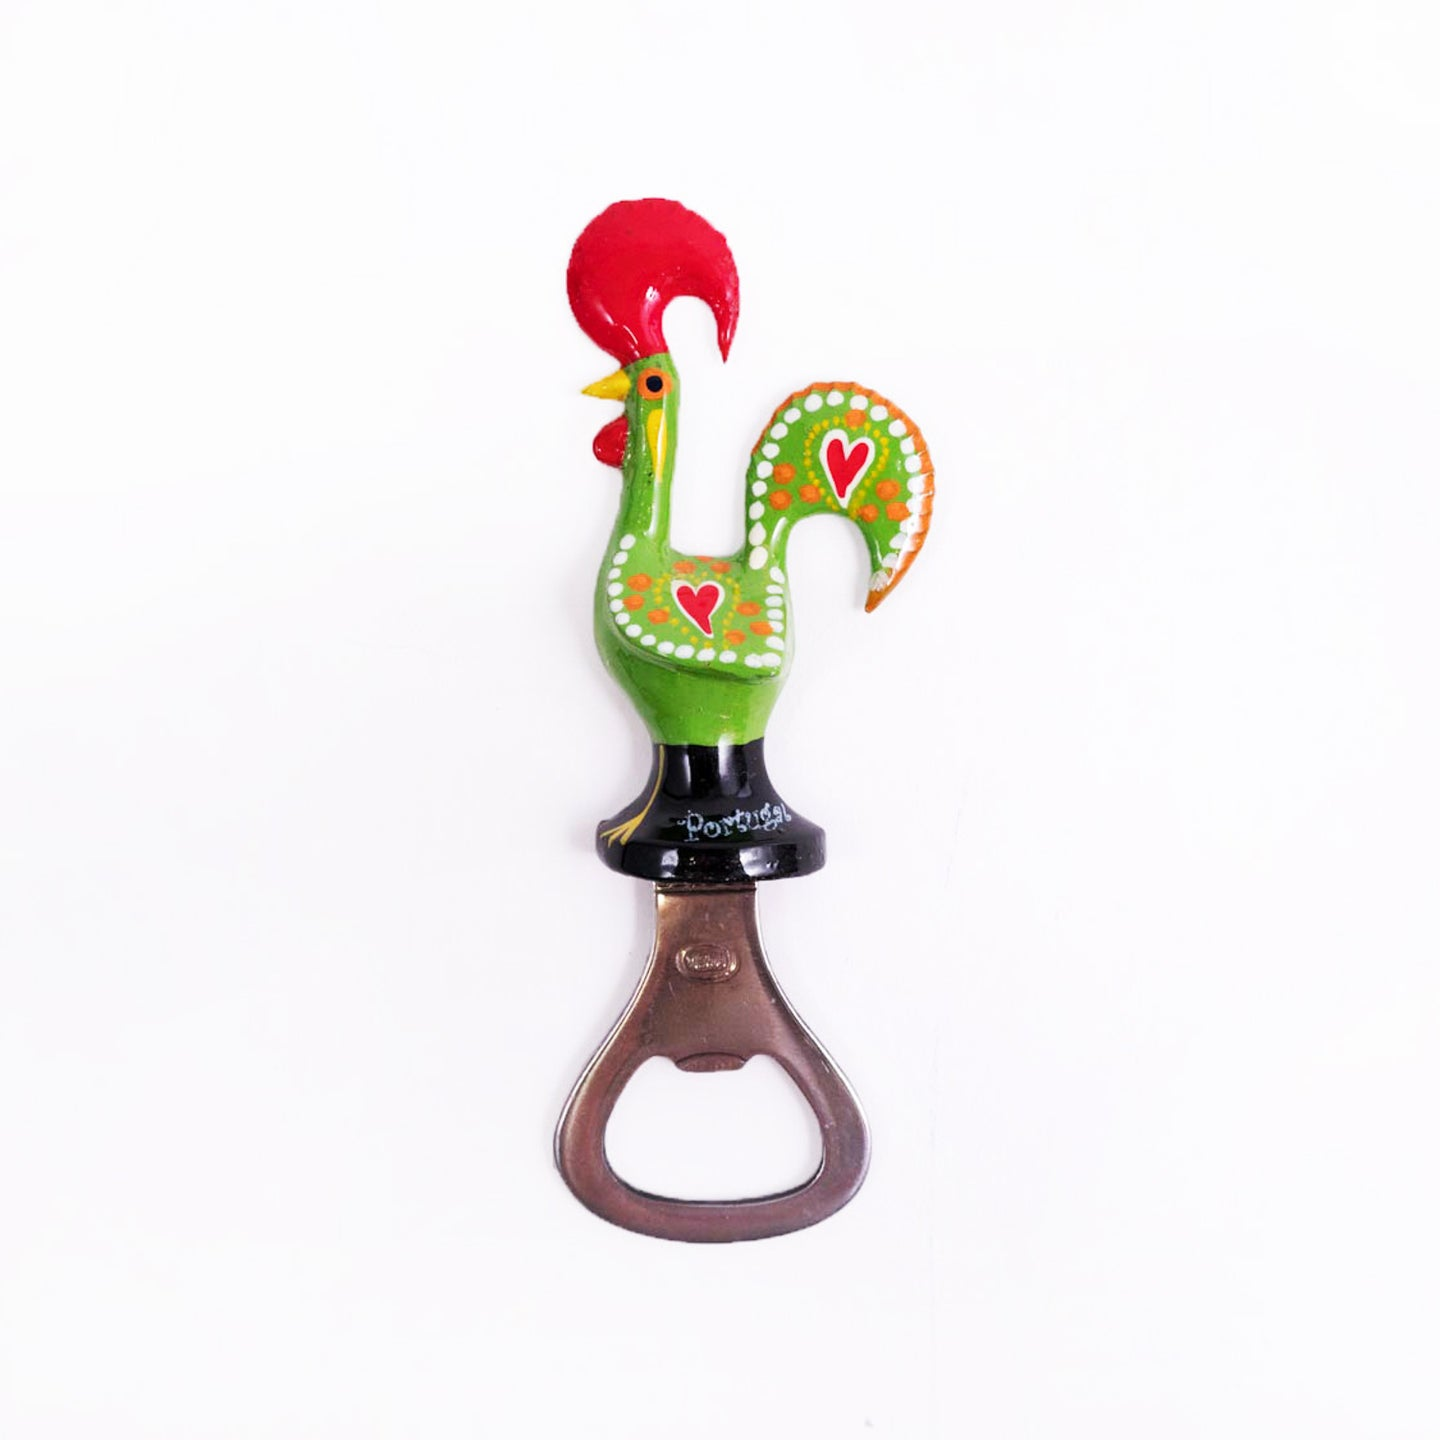 Galo de Barcelos _ Bottle Opener Magnet 11cm Green